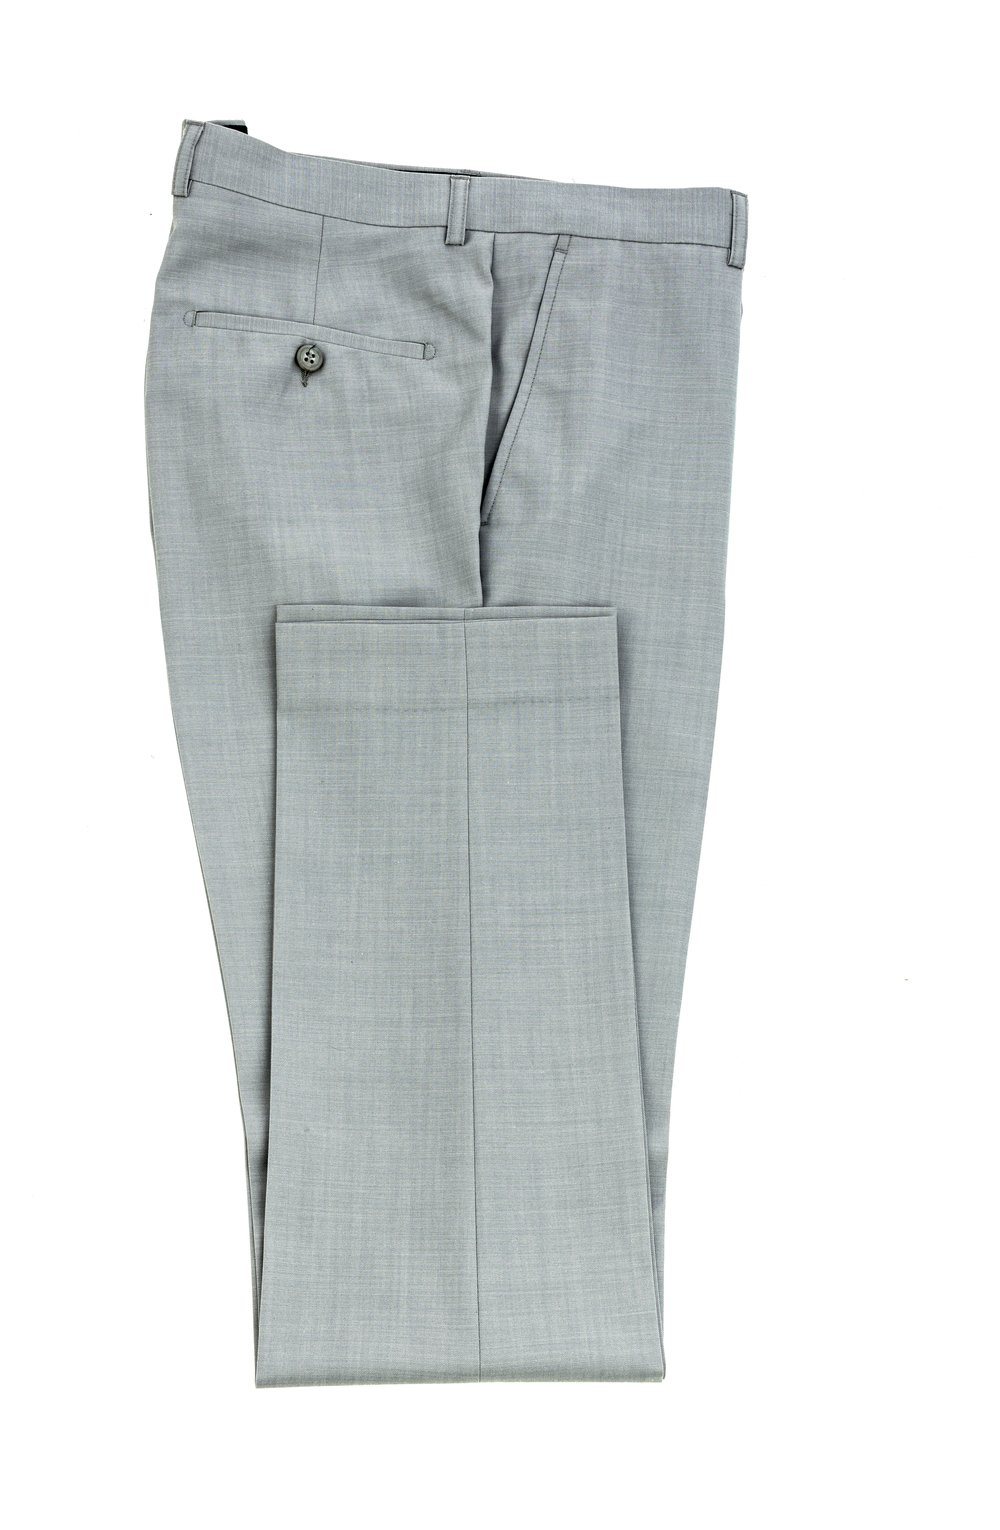 New England Jet Silver Trouser